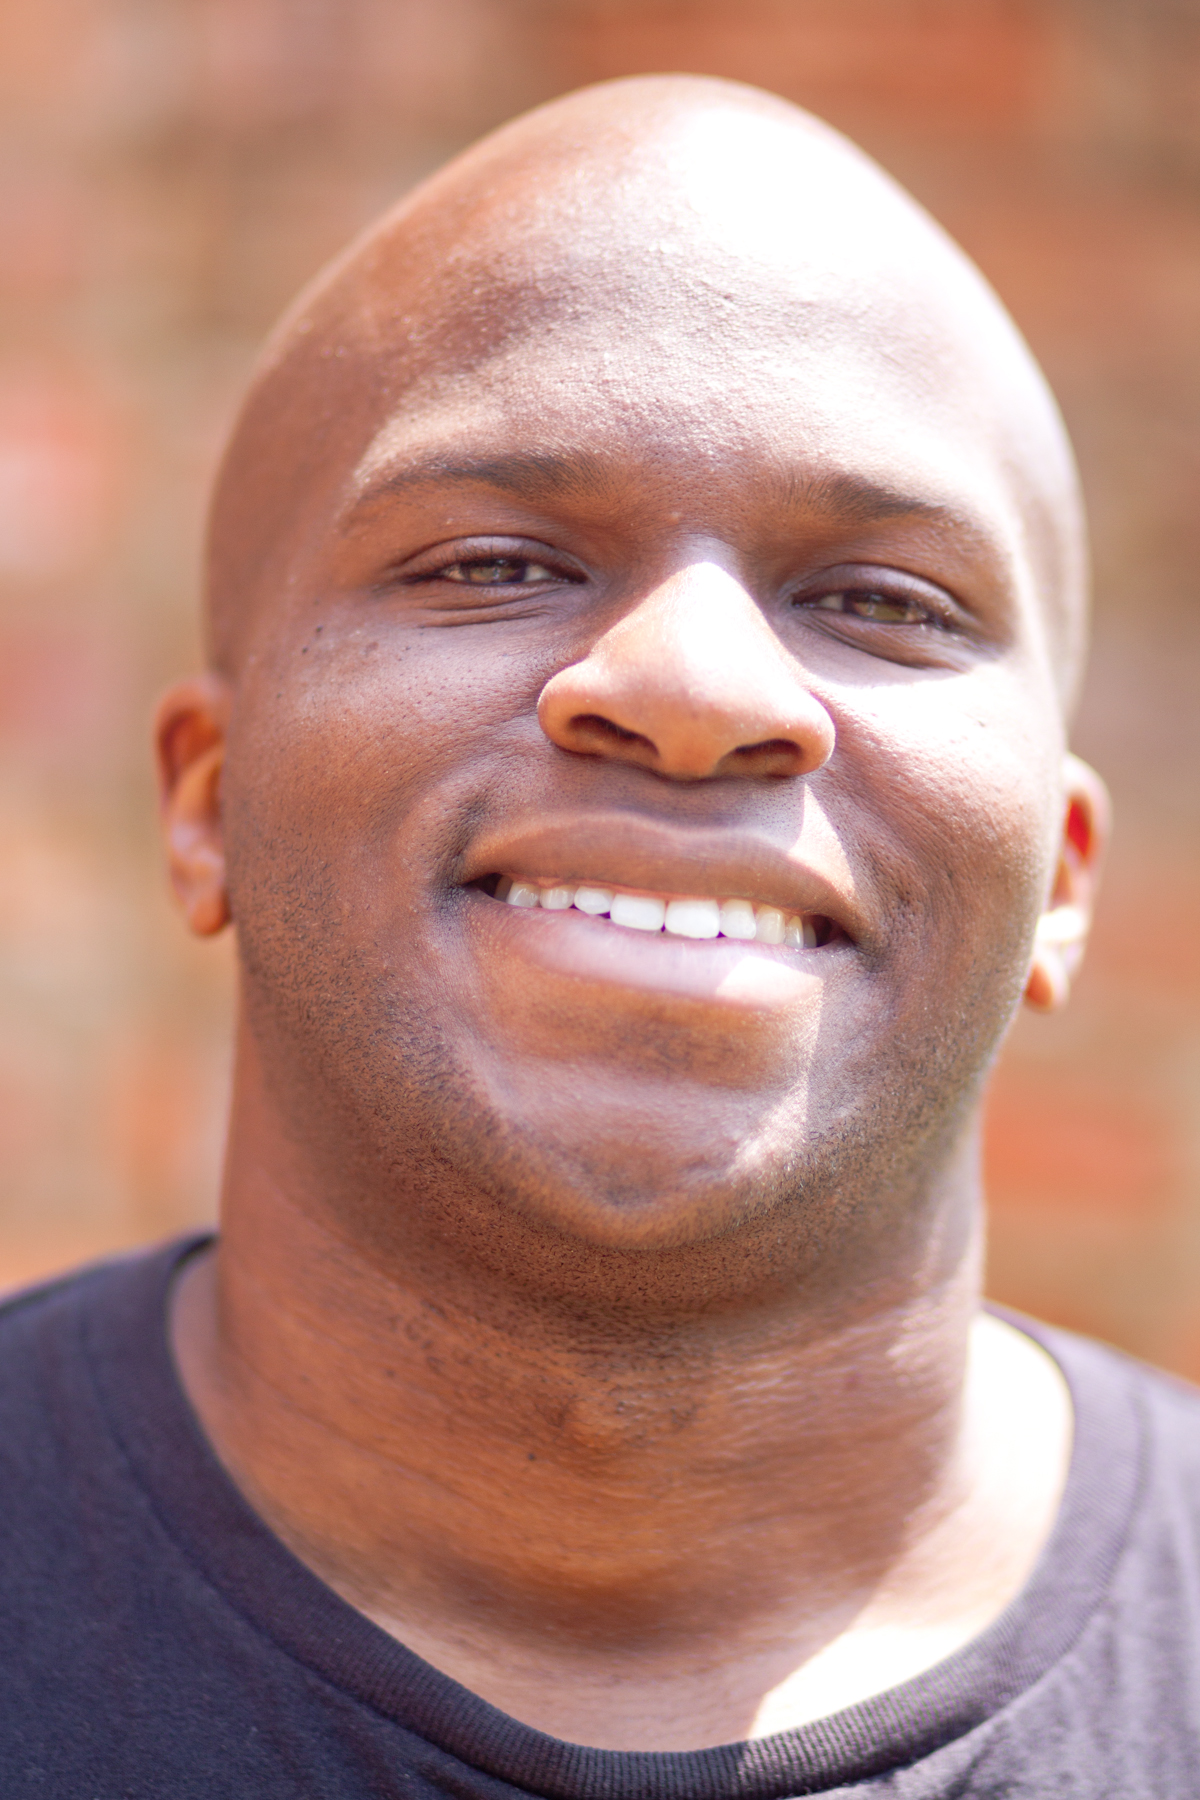 """Jason McCall - Jason McCall is an Alabama native, and he currently teaches at the University of North Alabama. His favorite word is """"neighbor"""" because that was the winning word in his 3rd grade spelling bee, and he is always happy to mention that he won his 3rd grade spelling bee. He also won his 2nd grade spelling bee. He holds an MFA from the University of Miami, and his collections include Two-Face God; Dear Hero,; Silver; I Can Explain; and Mother, Less Child. He is the co-editor of It Was Written: Poetry Inspired by Hip-Hop."""